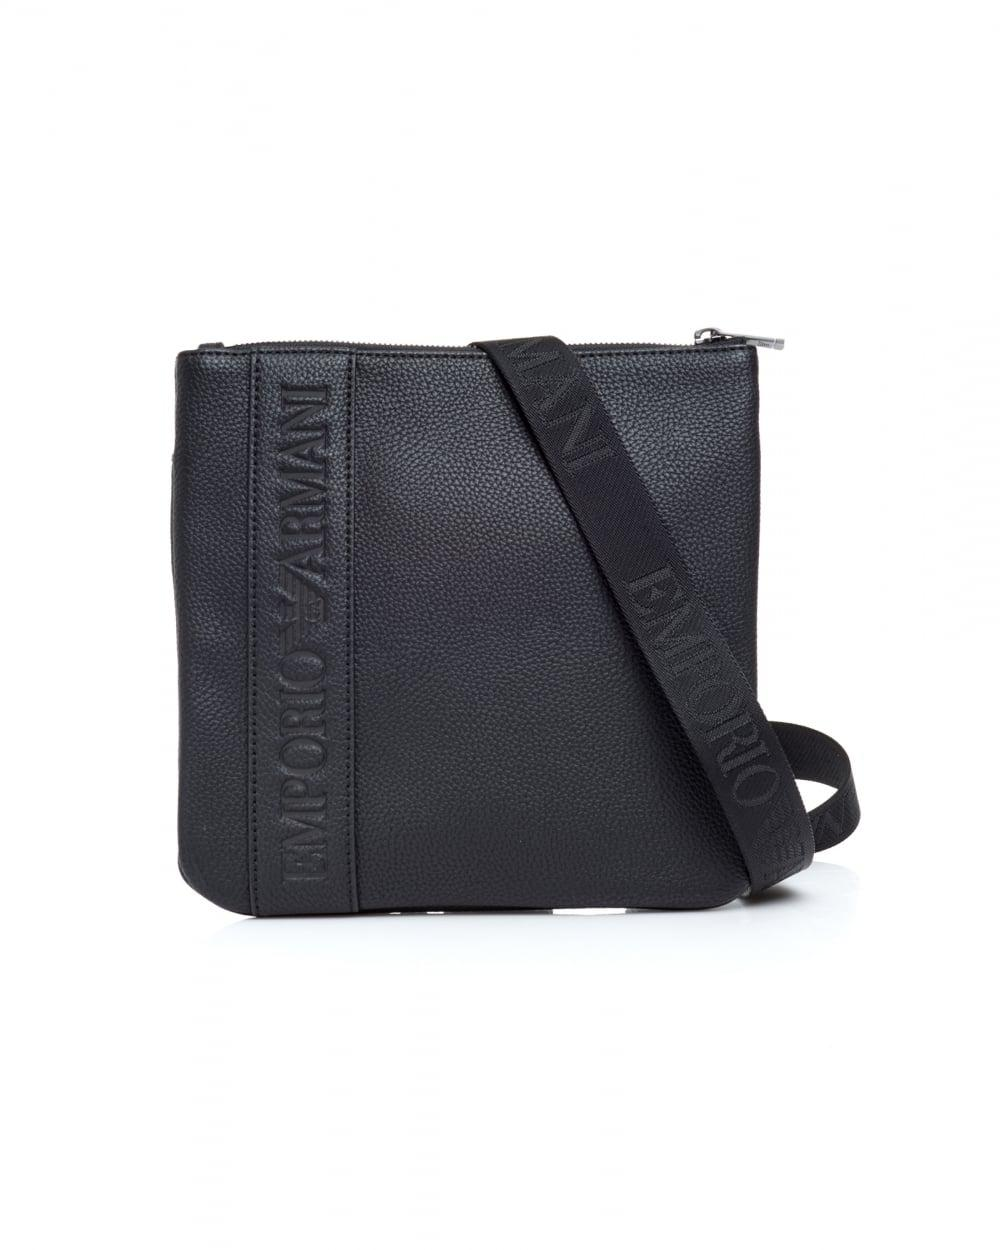 3fa821e7cb36 Lyst - Emporio Armani Horizontal Logo Band Black Crossbody Stash Bag ...